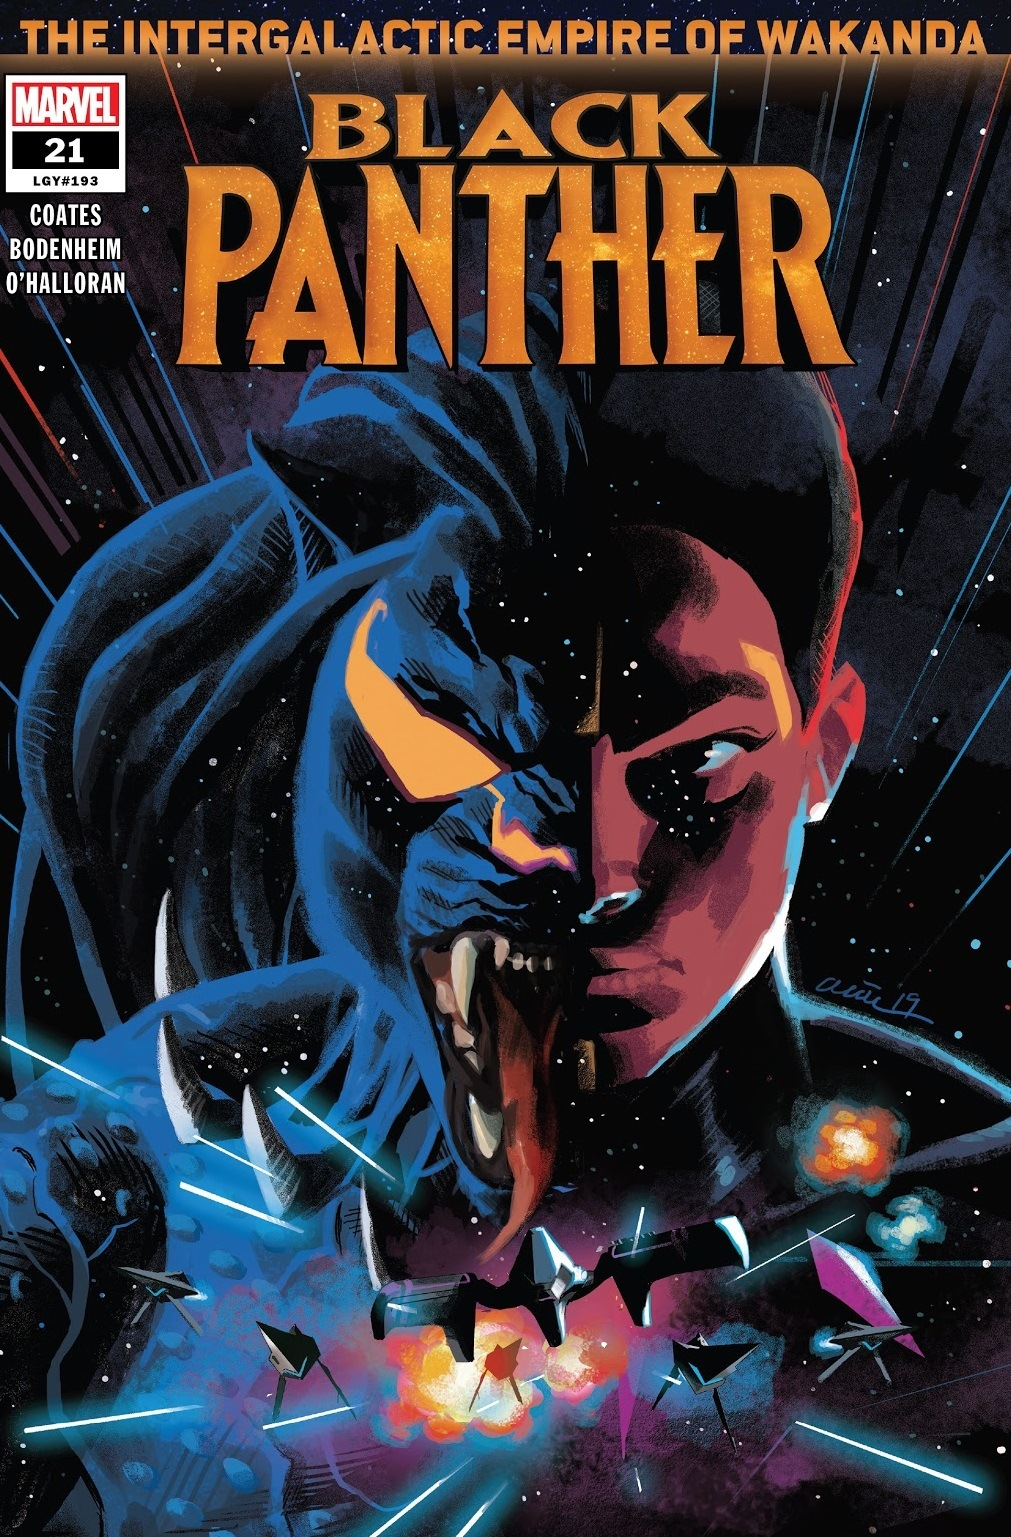 black panther issue 21 review